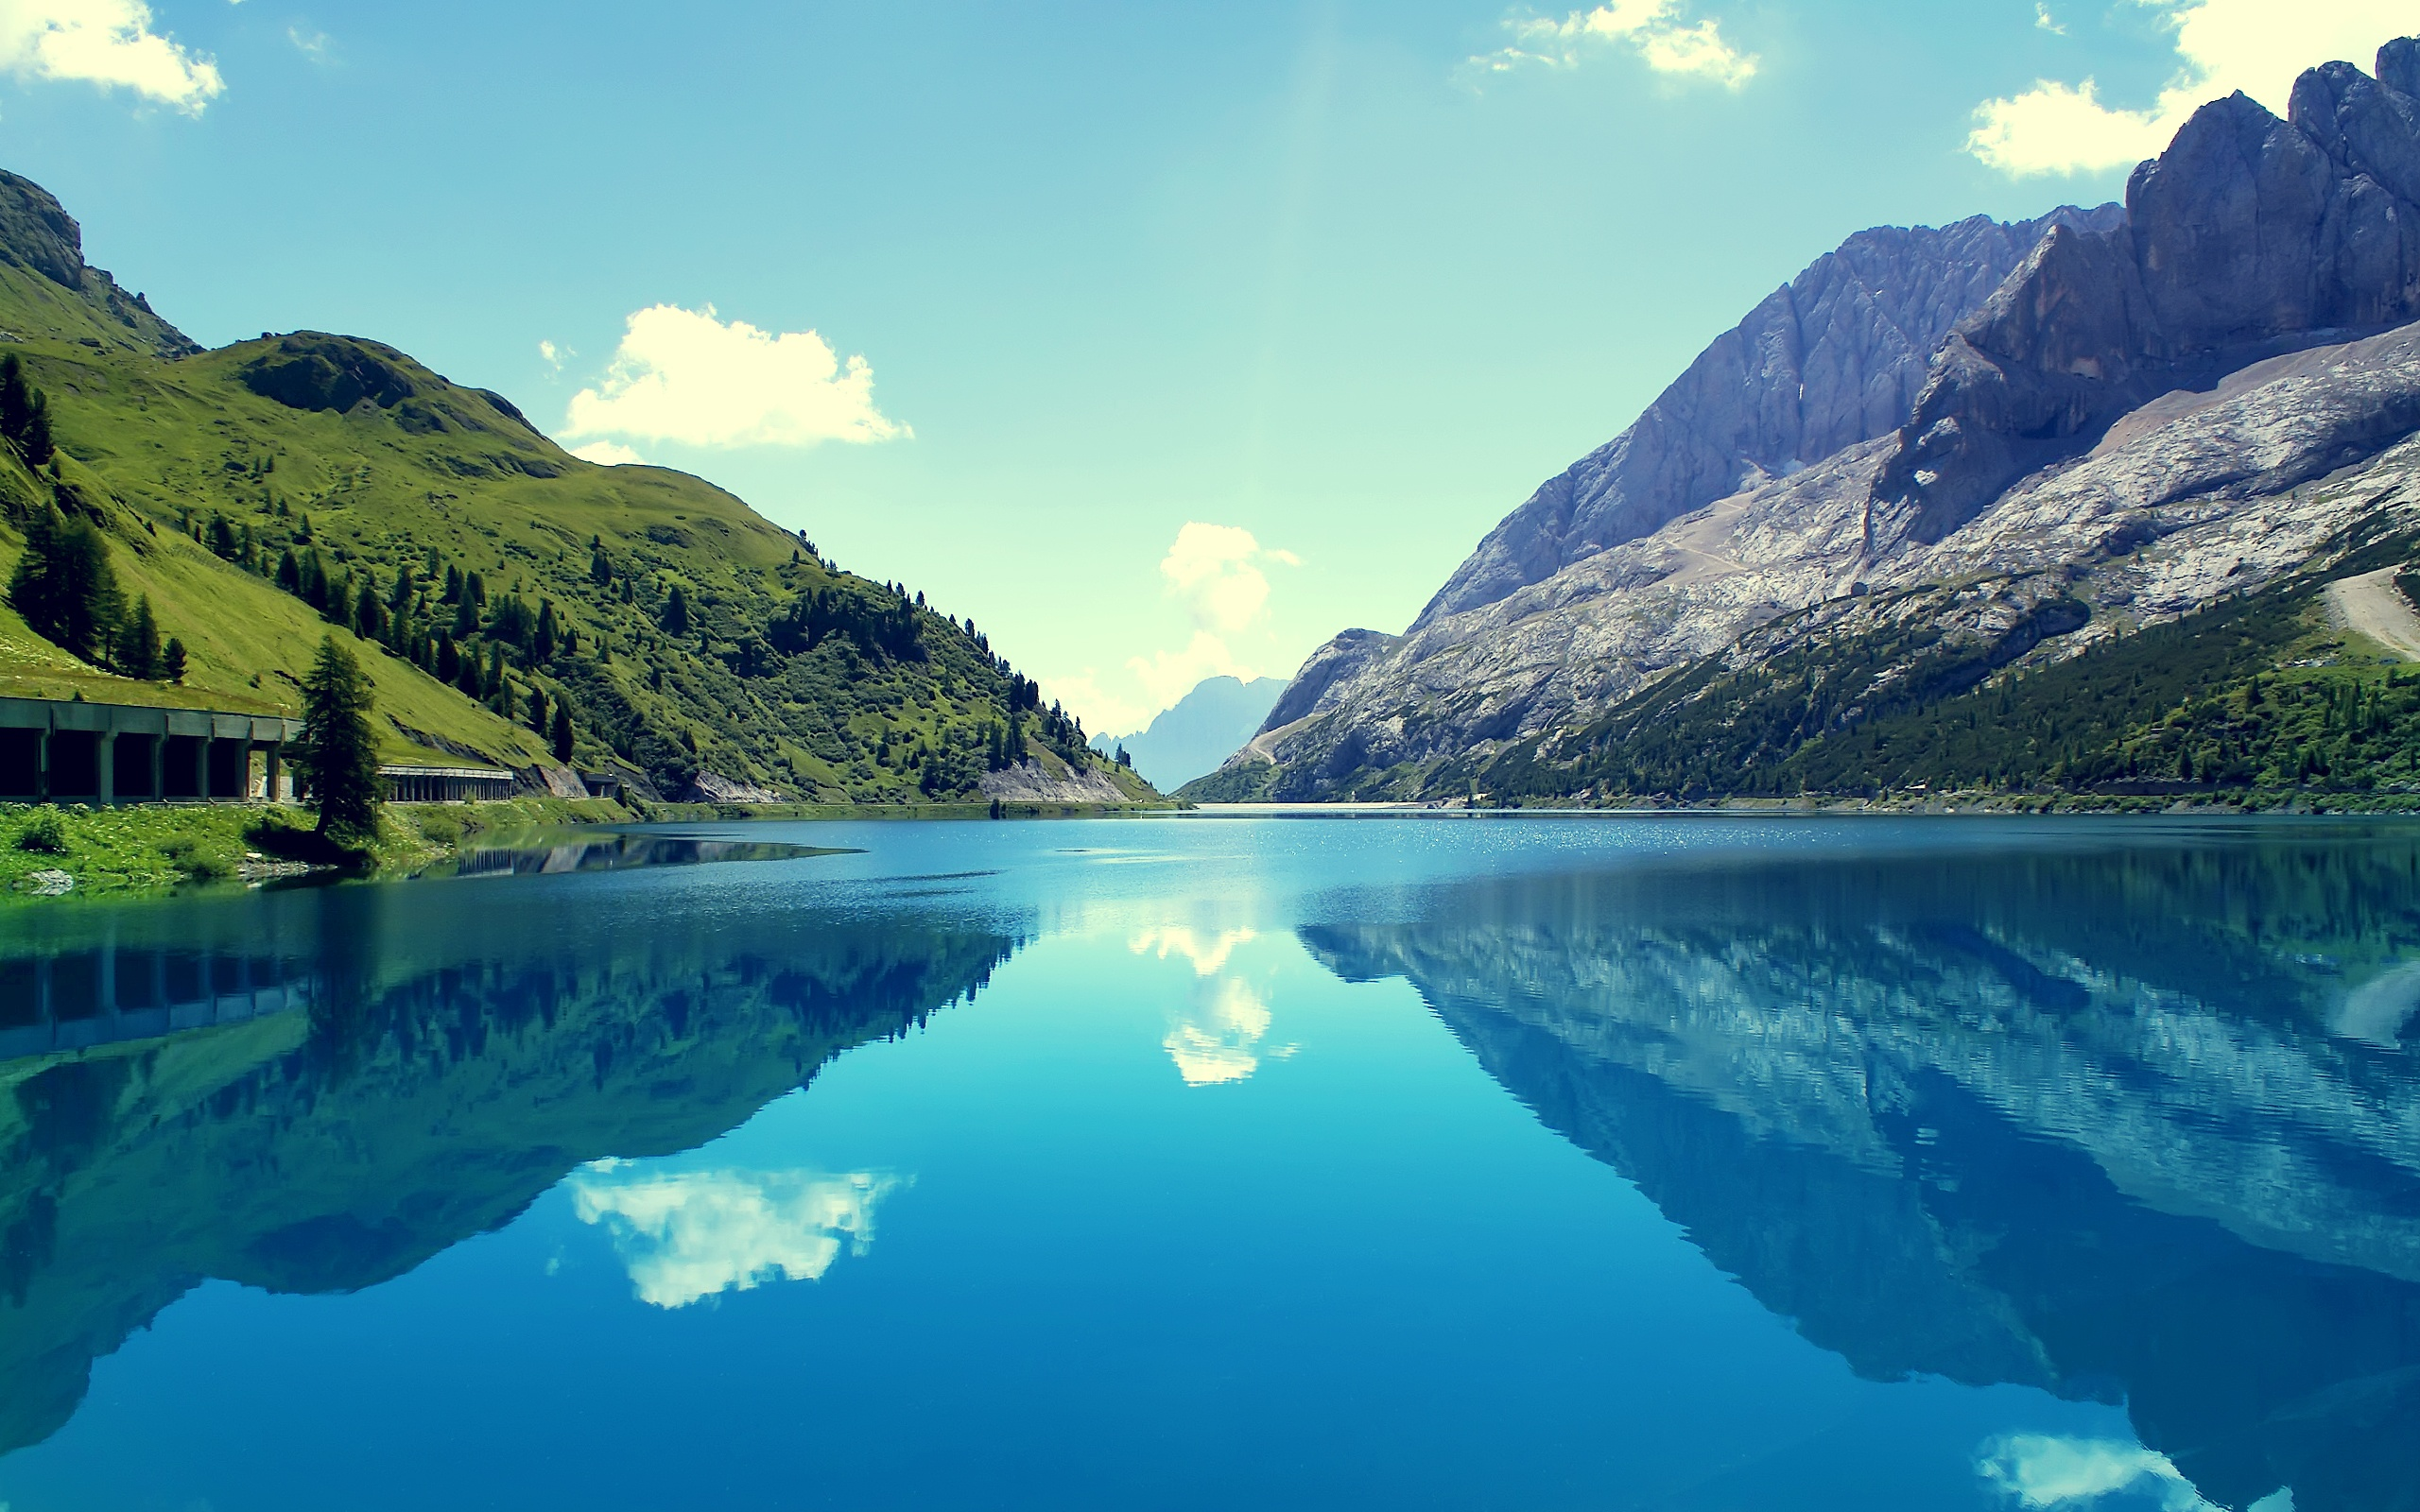 Download Marmoleda Mountain Reflections Wallpaper for 2560 x 1600 2560x1600